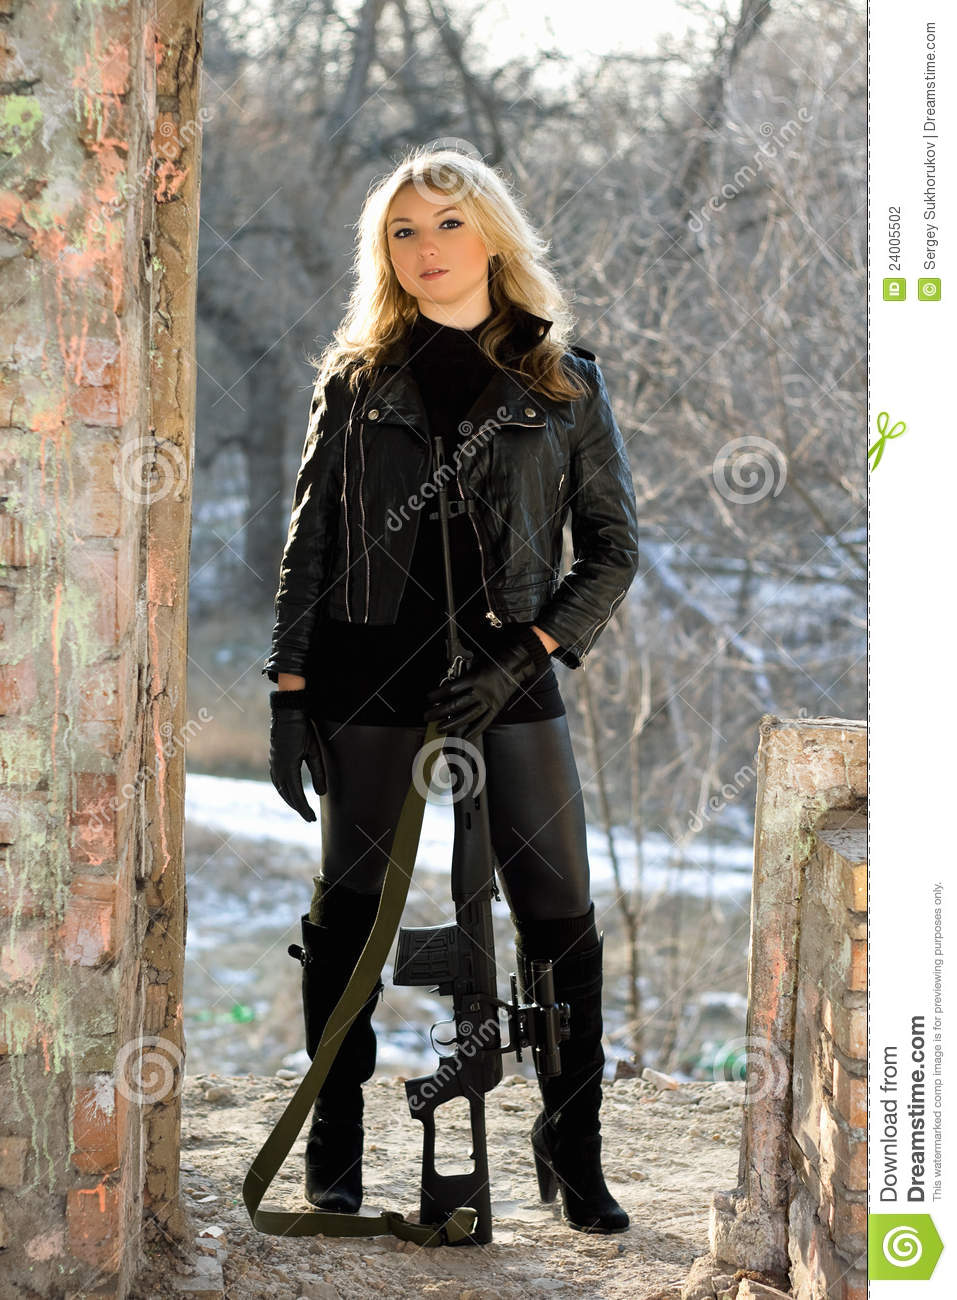 Anime Girls Guns Wallpaper Pretty Woman With A Sniper Rifle Stock Photography Image